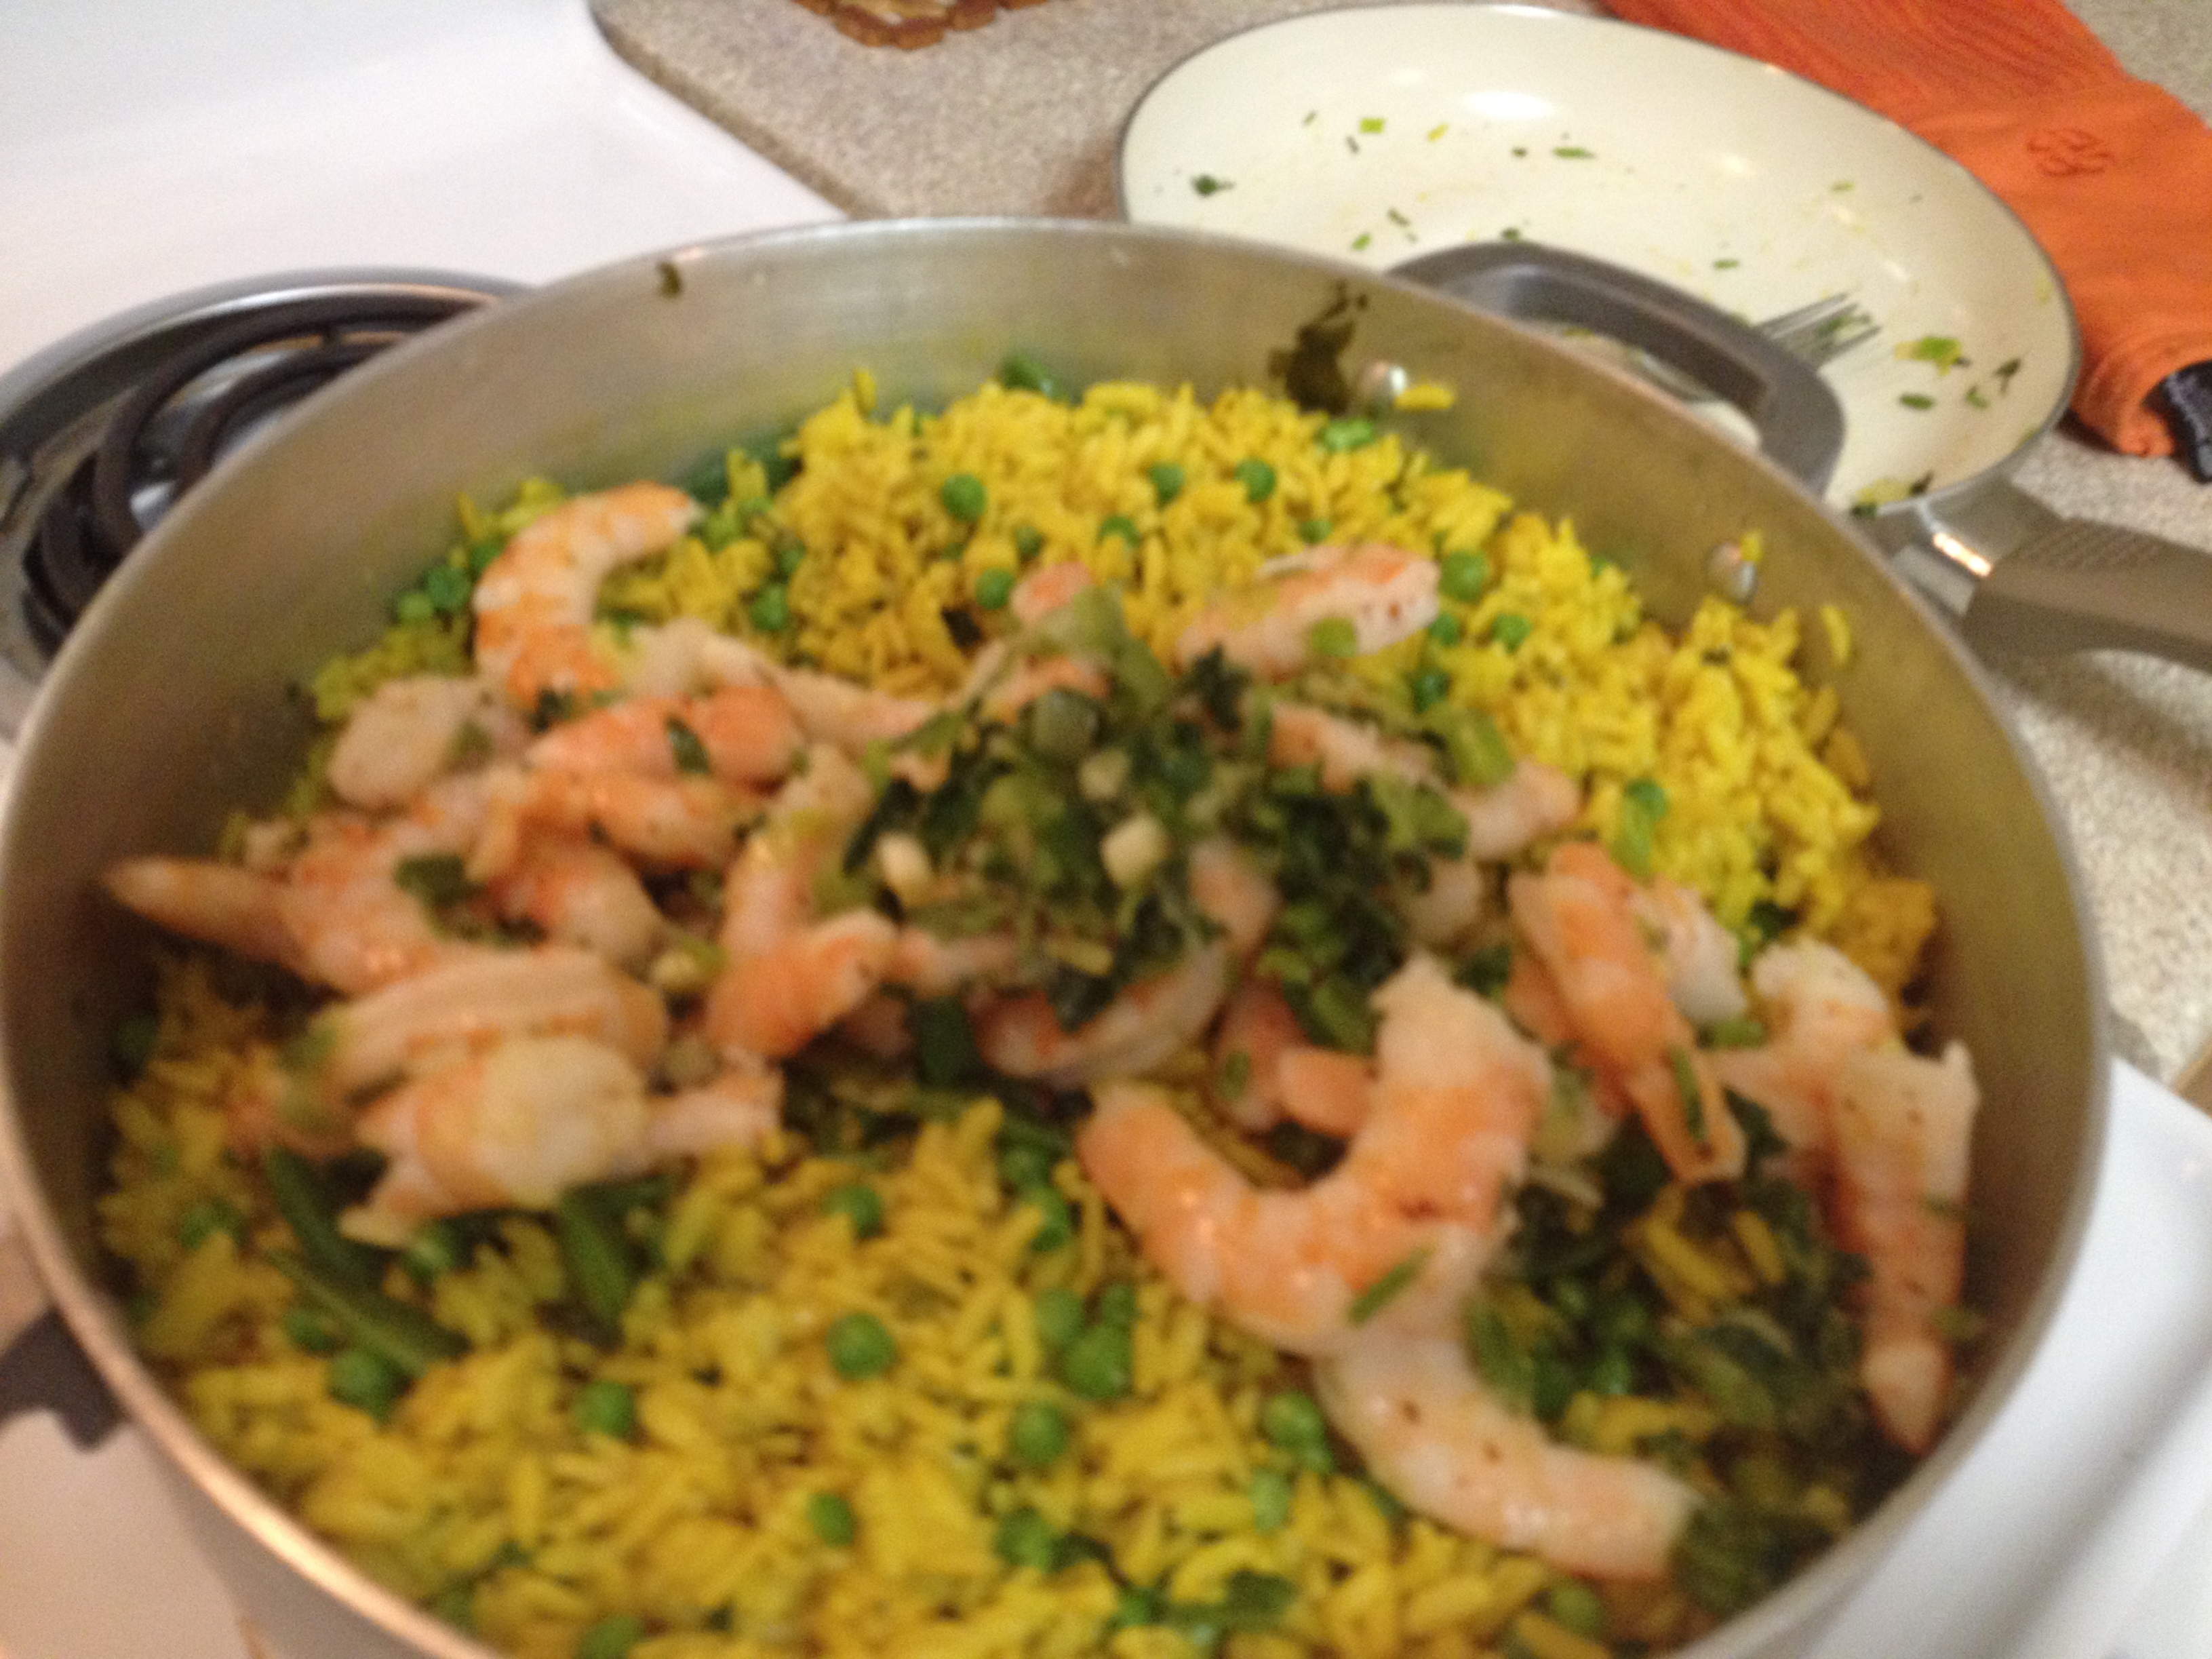 Cooked rice with shrimp